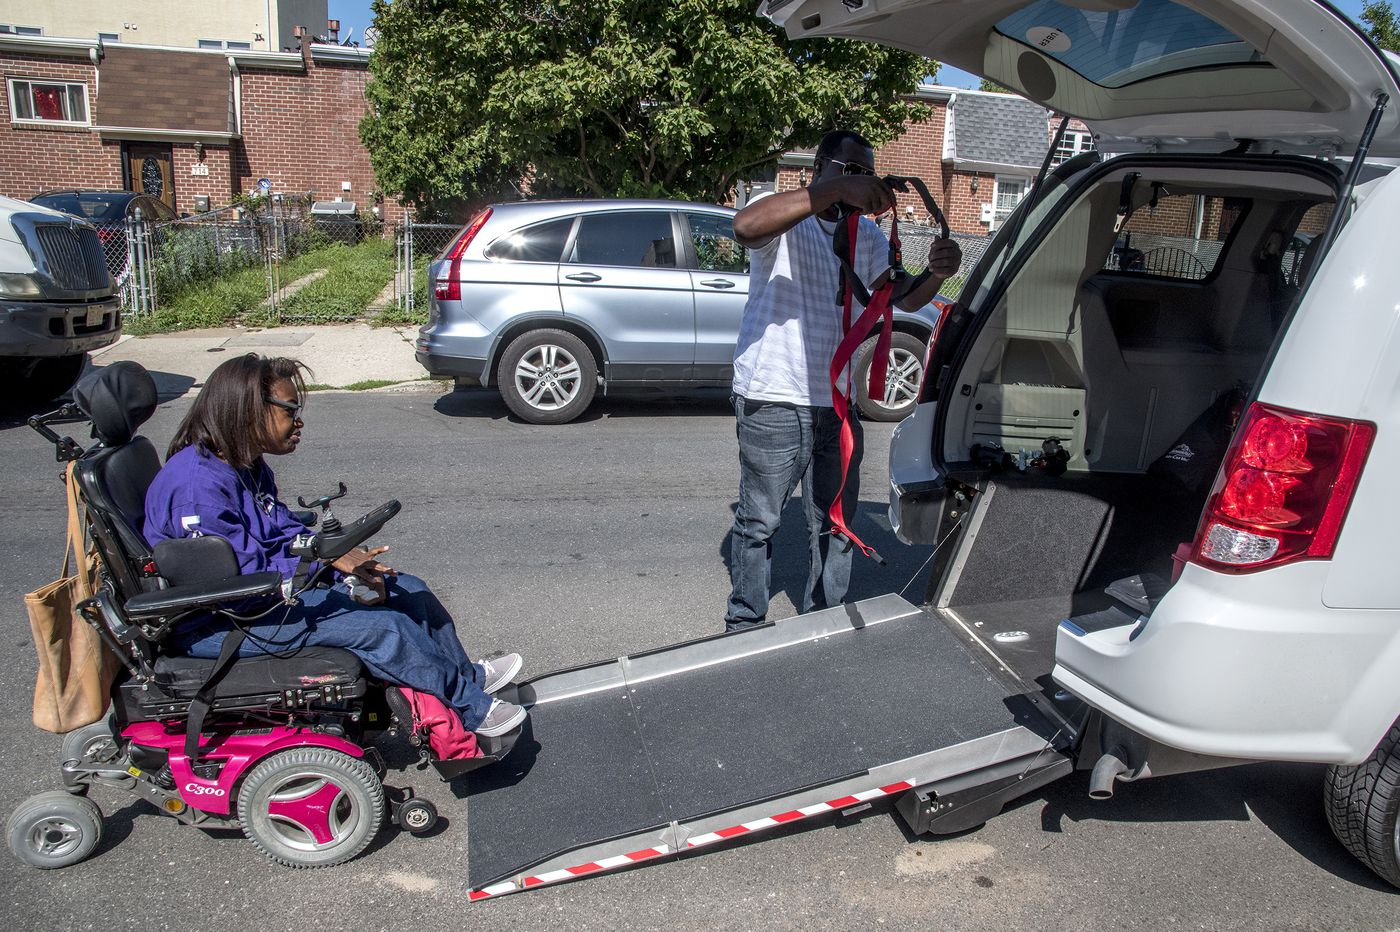 Uber is discriminating against disabled riders, Pennsylvania lawsuit claims